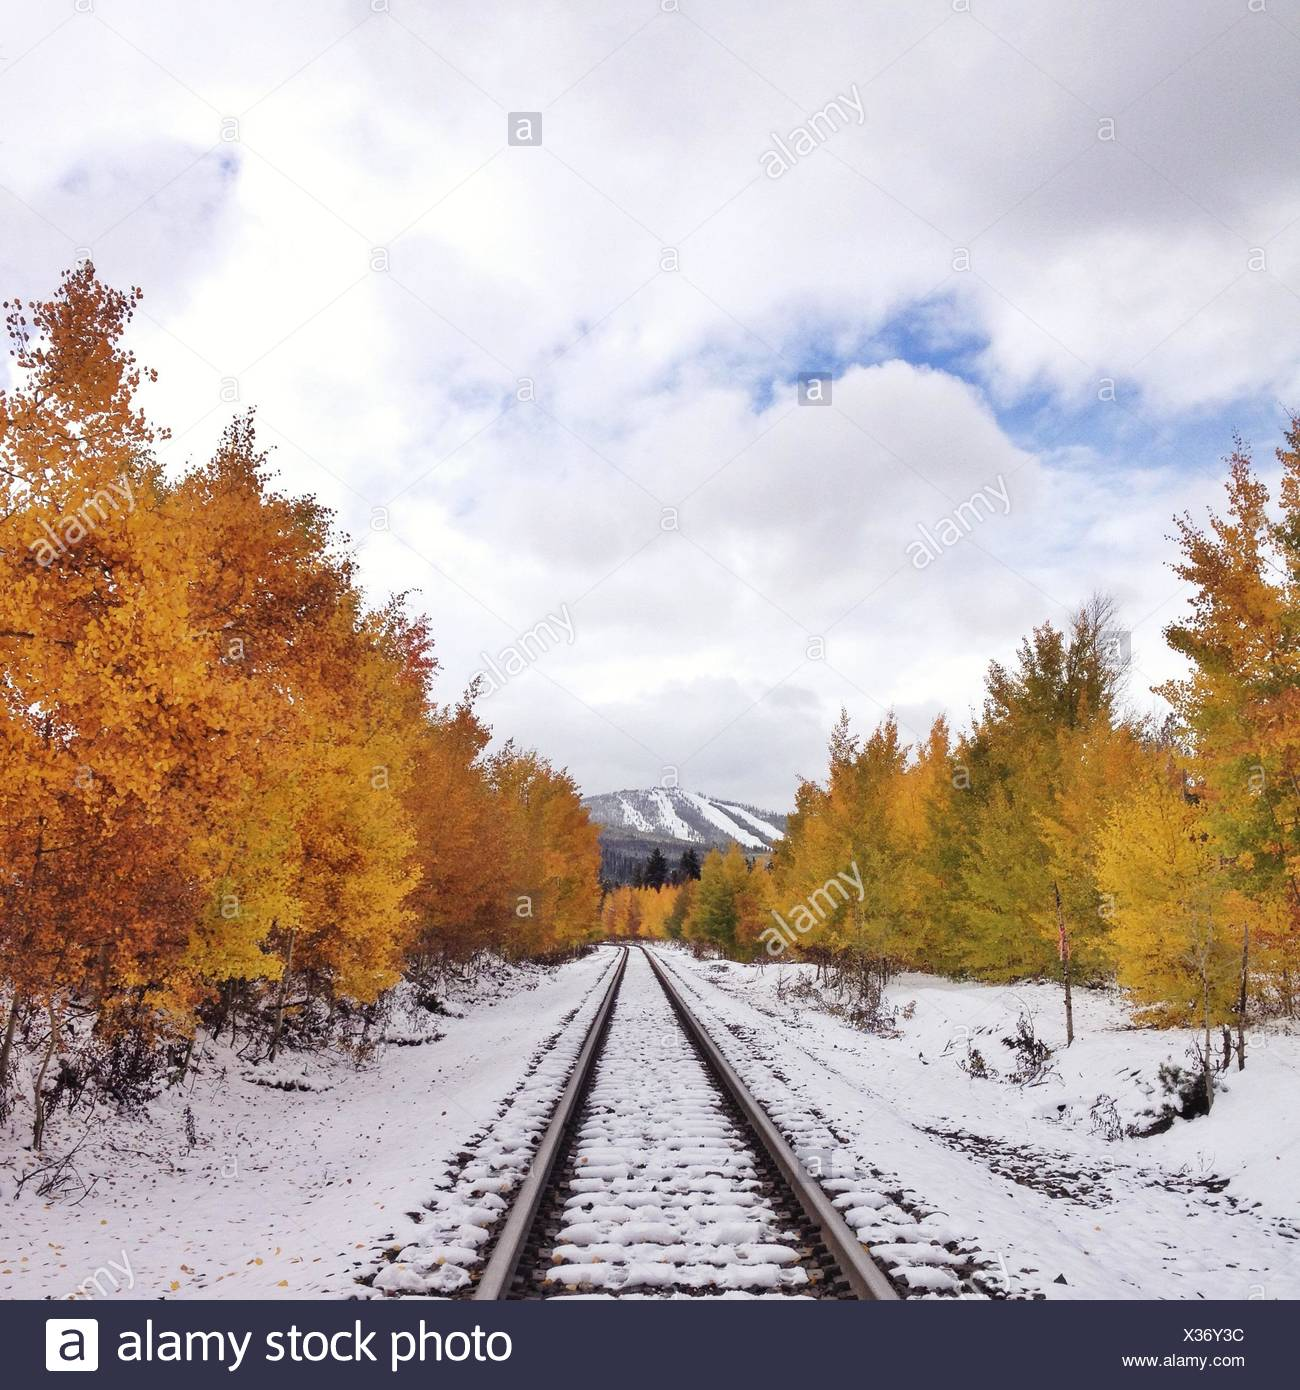 Symmetrical view of railroad trail in snow, and yellow trees - Stock Image